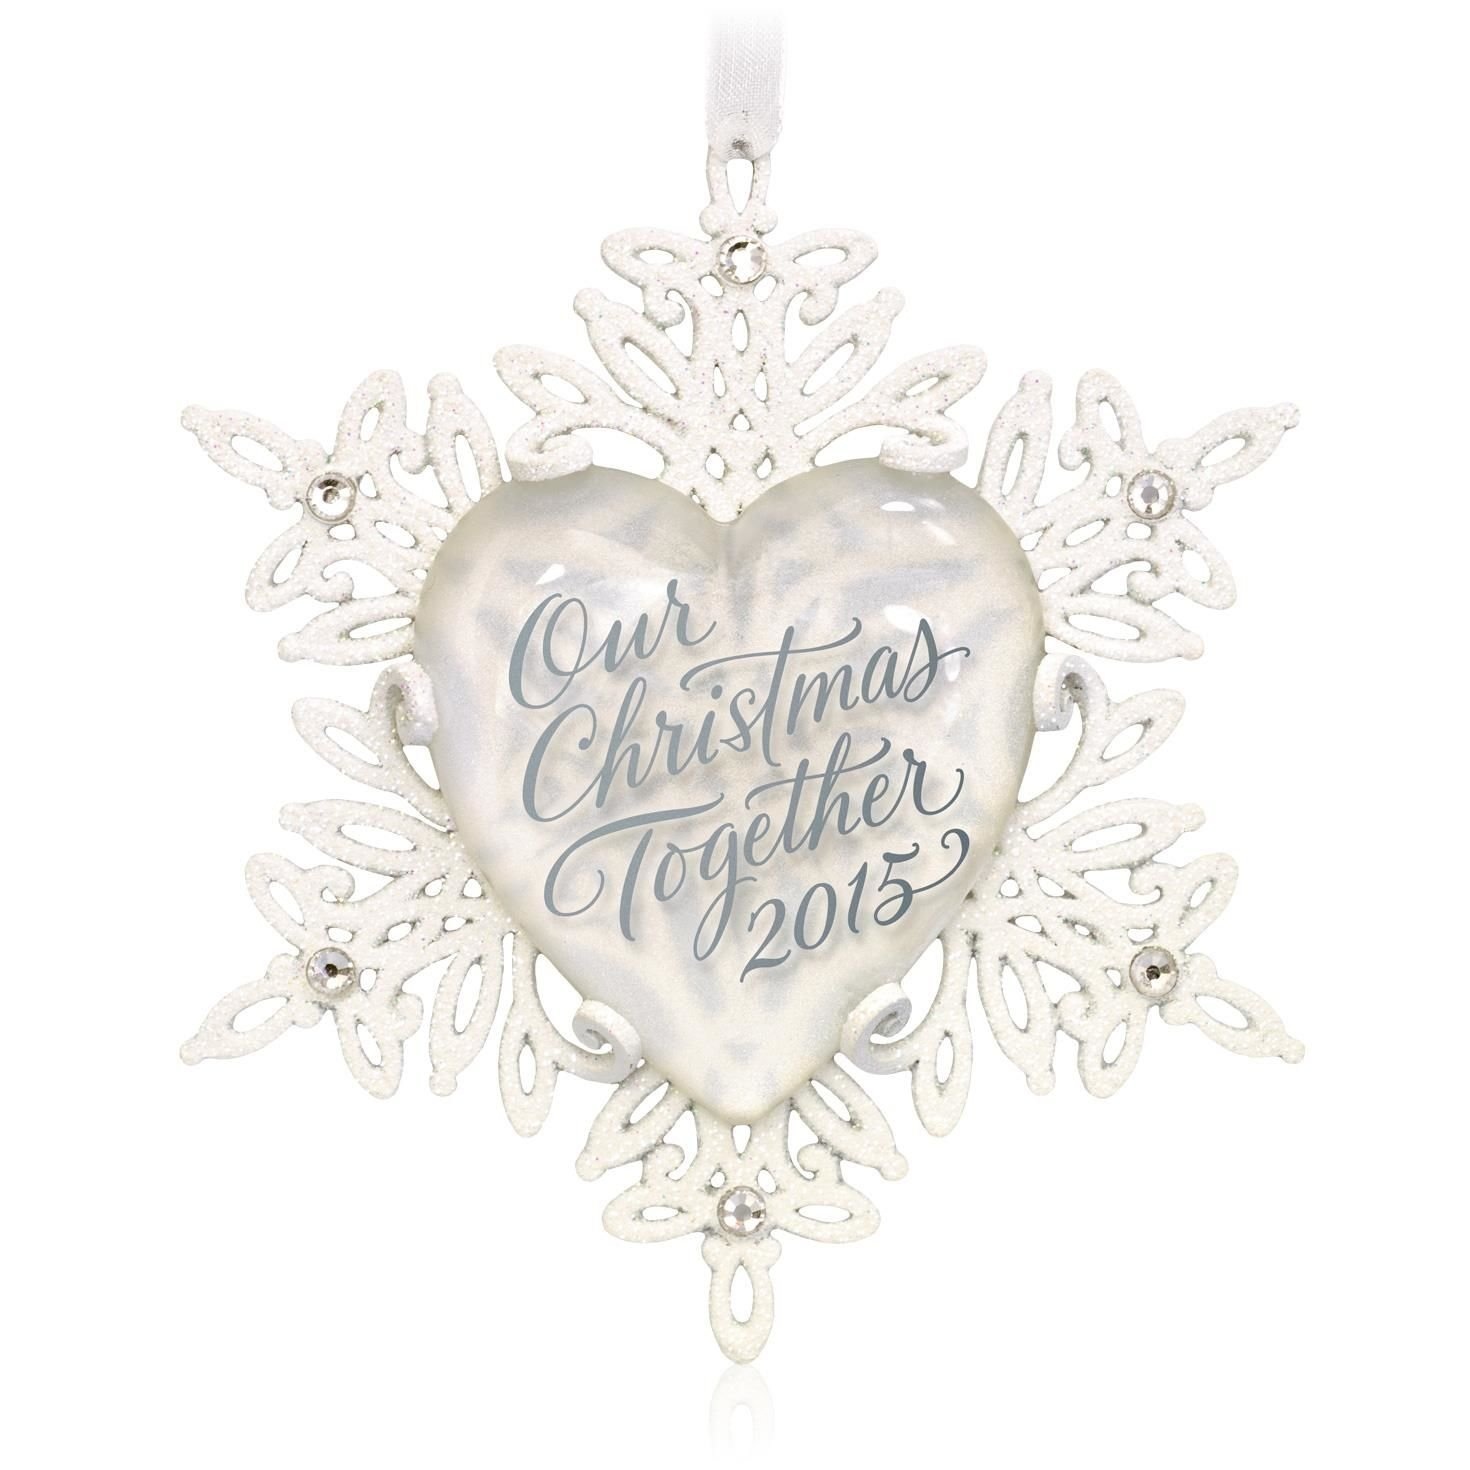 Amazoncom Our Christmas Together Snowflake Ornament 2015